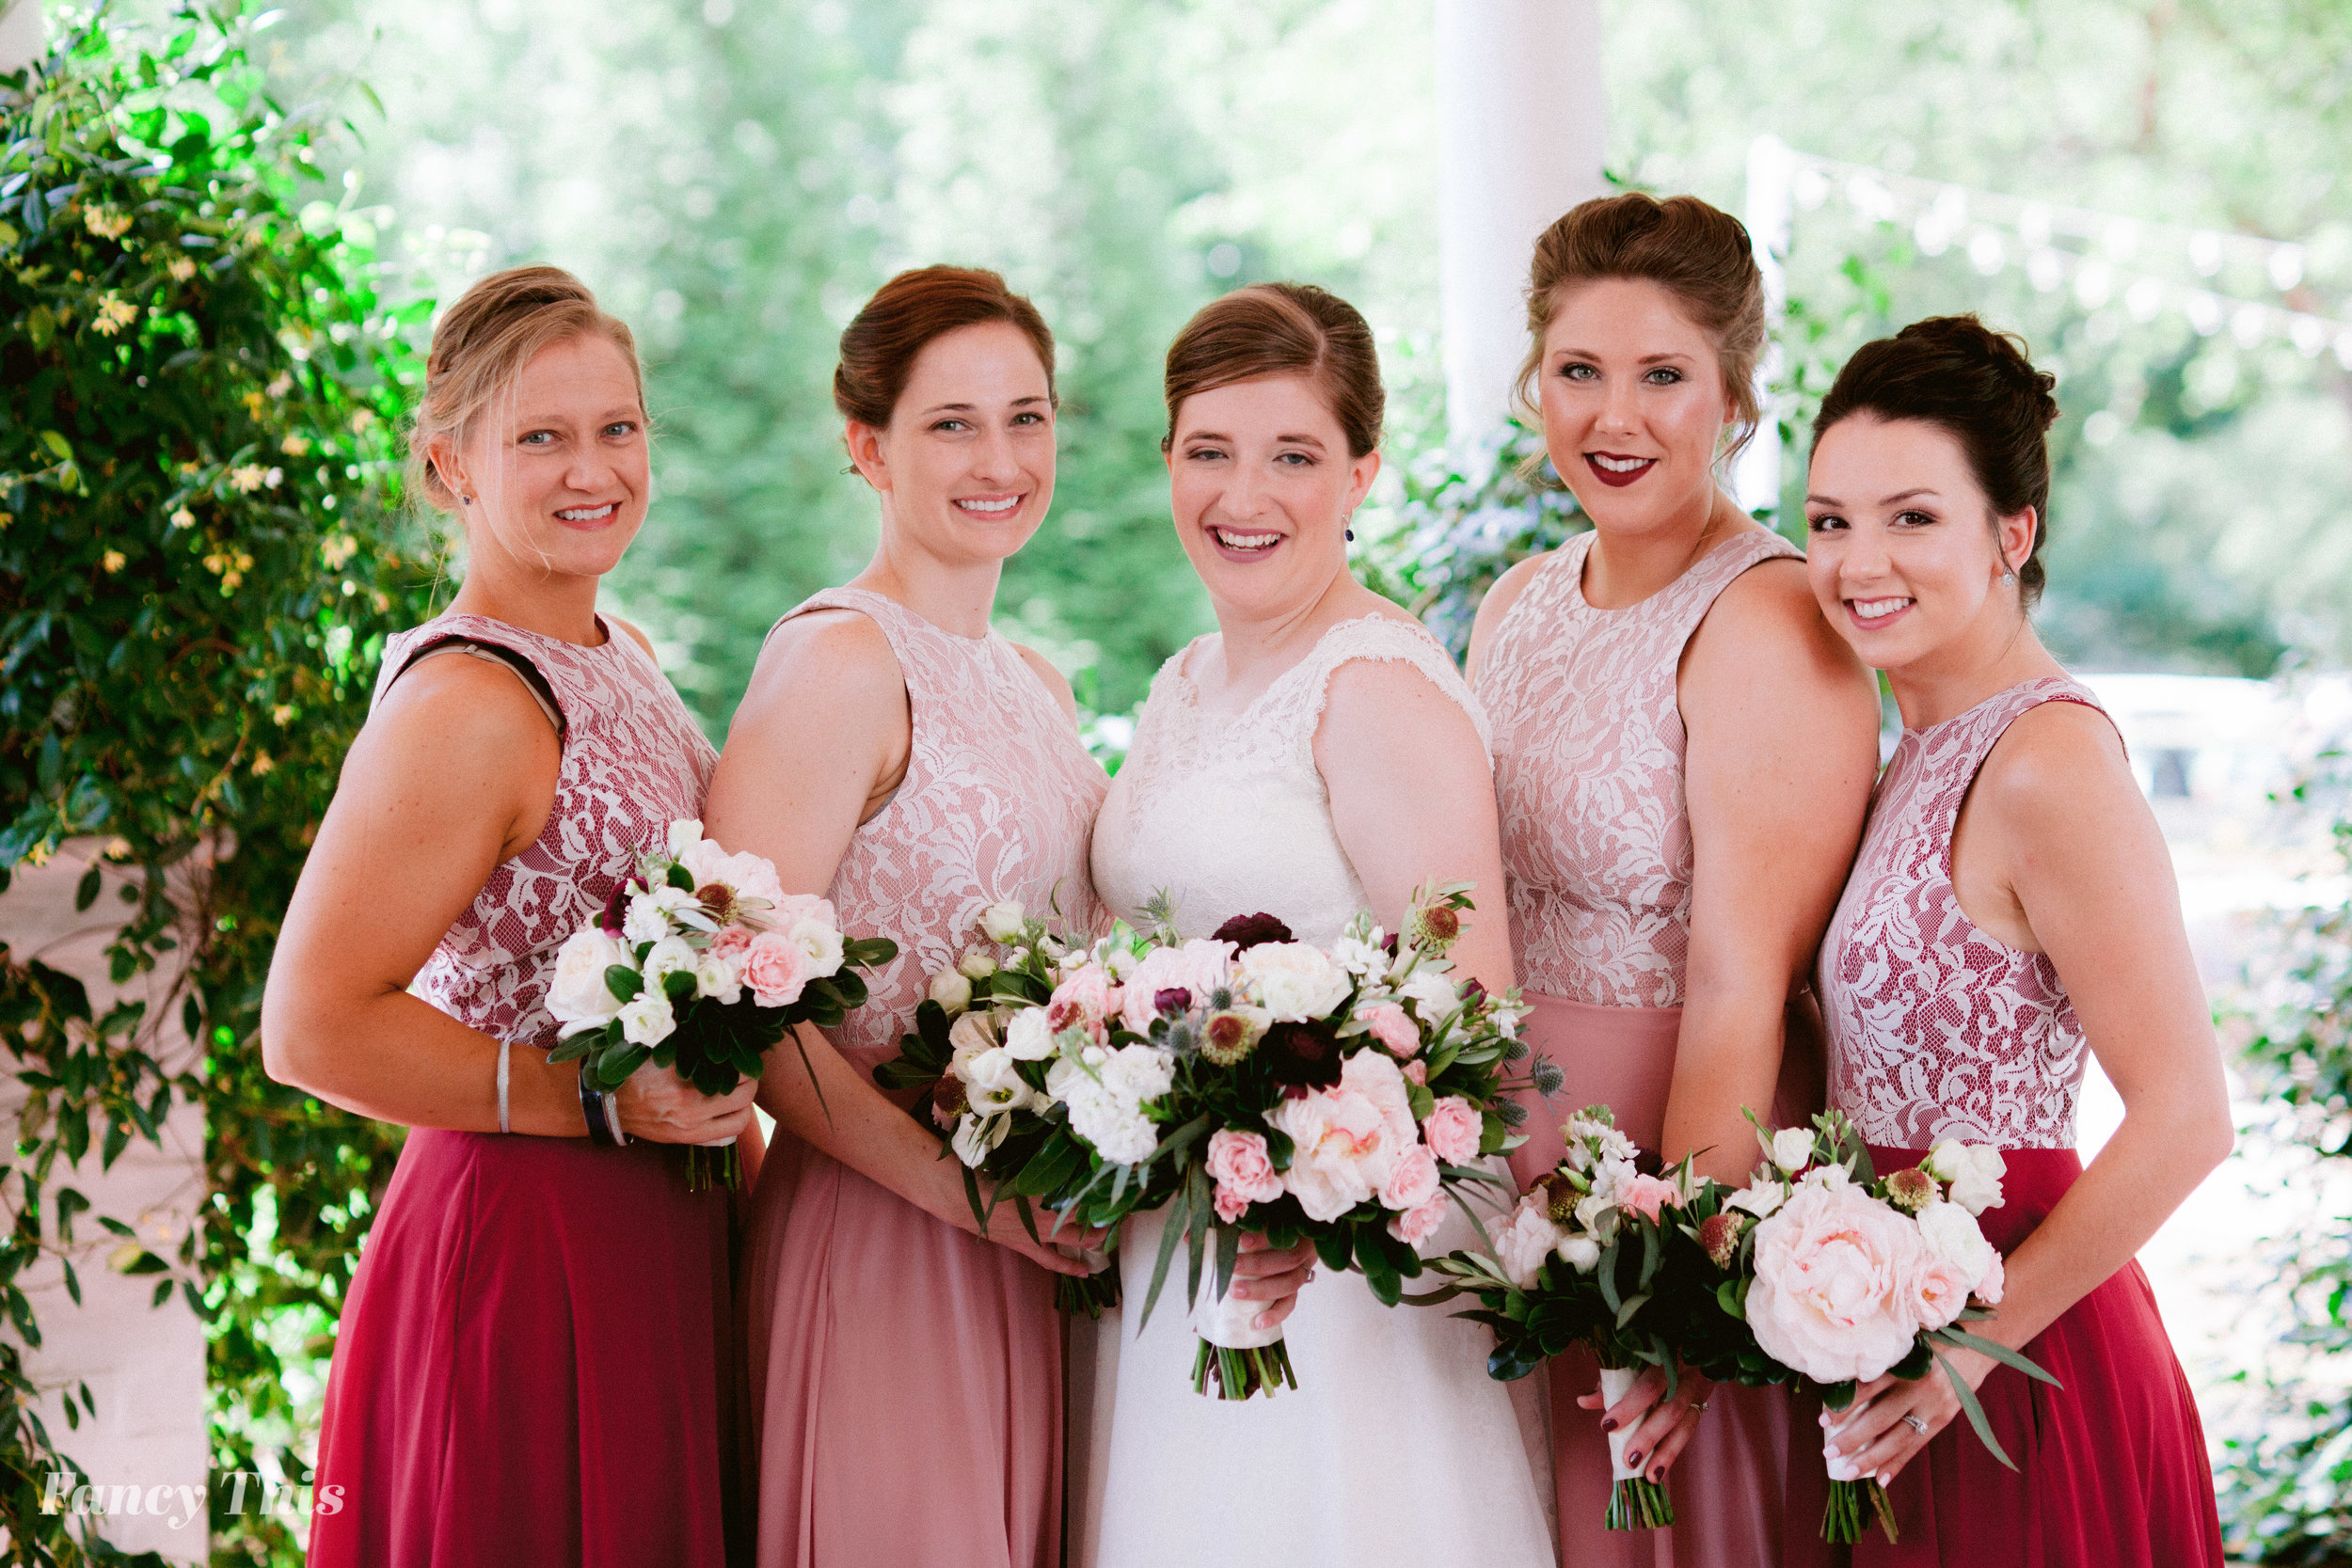 themimshousewedding_summerweddinginhollysprings_fancythis-147.jpg